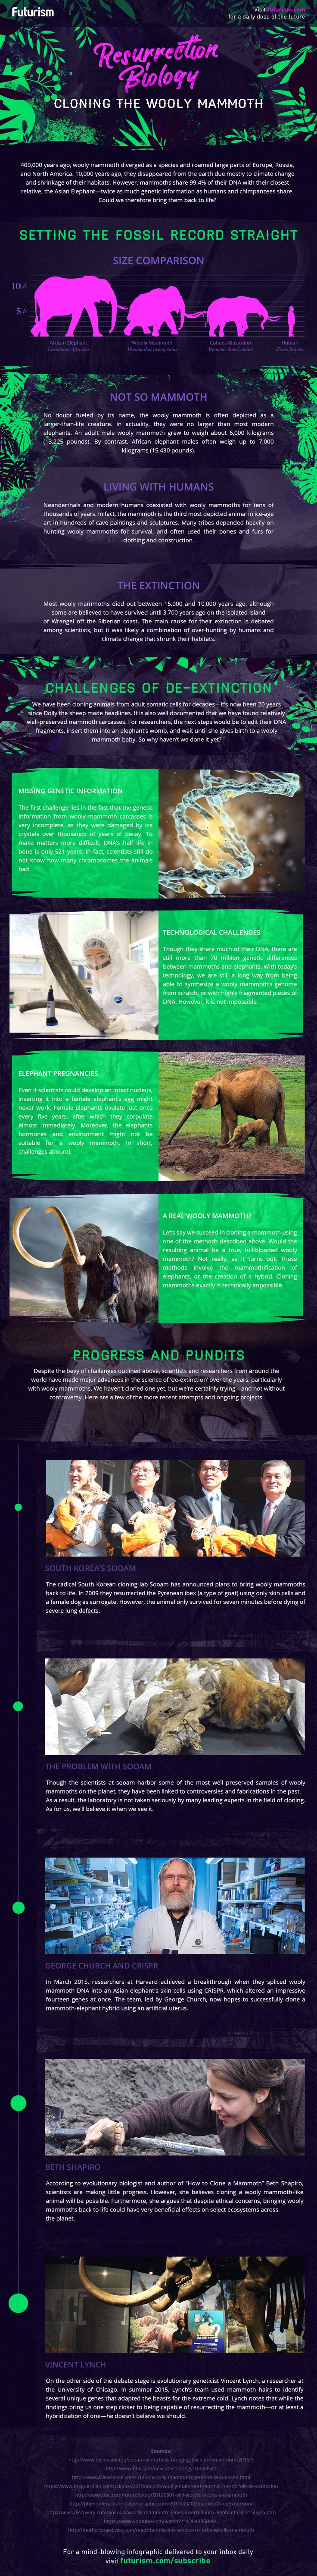 resurrection biology wooly mammoth infographic